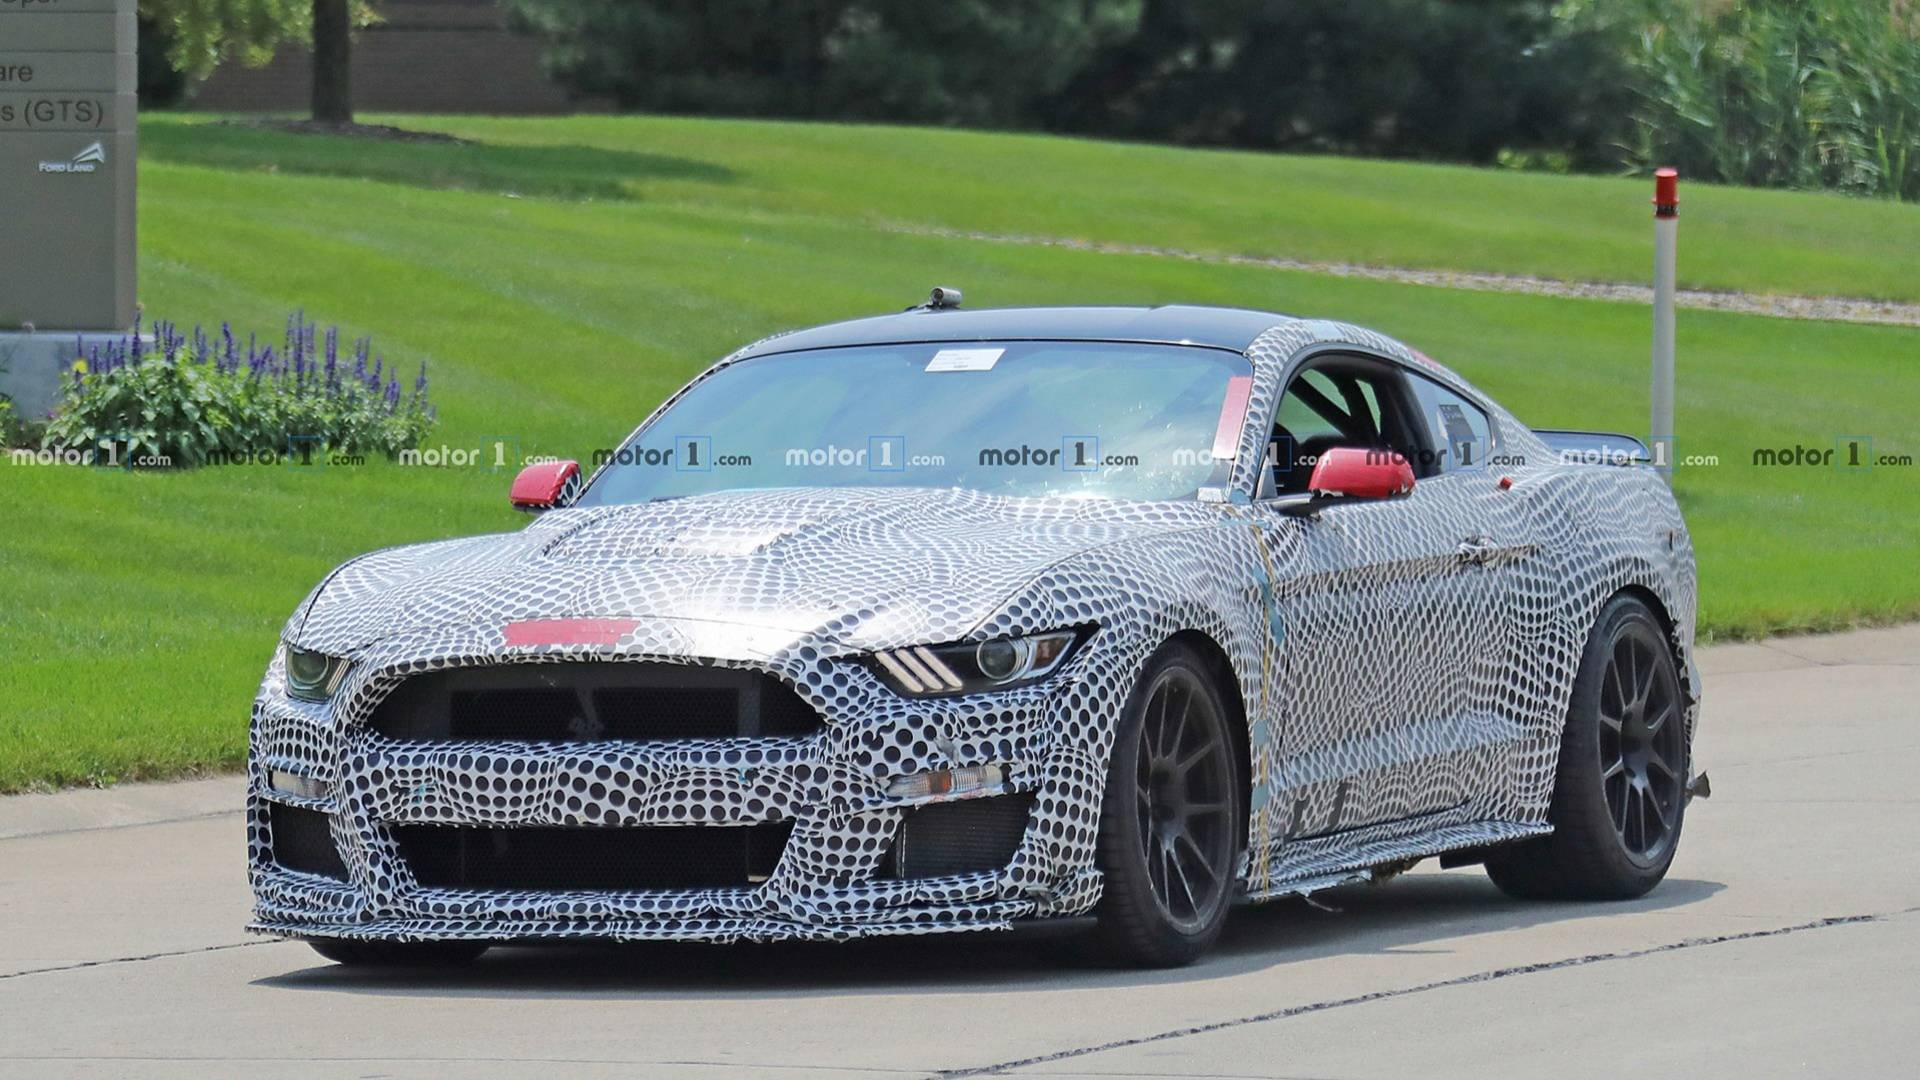 85 New 2019 Ford Mustang Gt500 Specs and Review